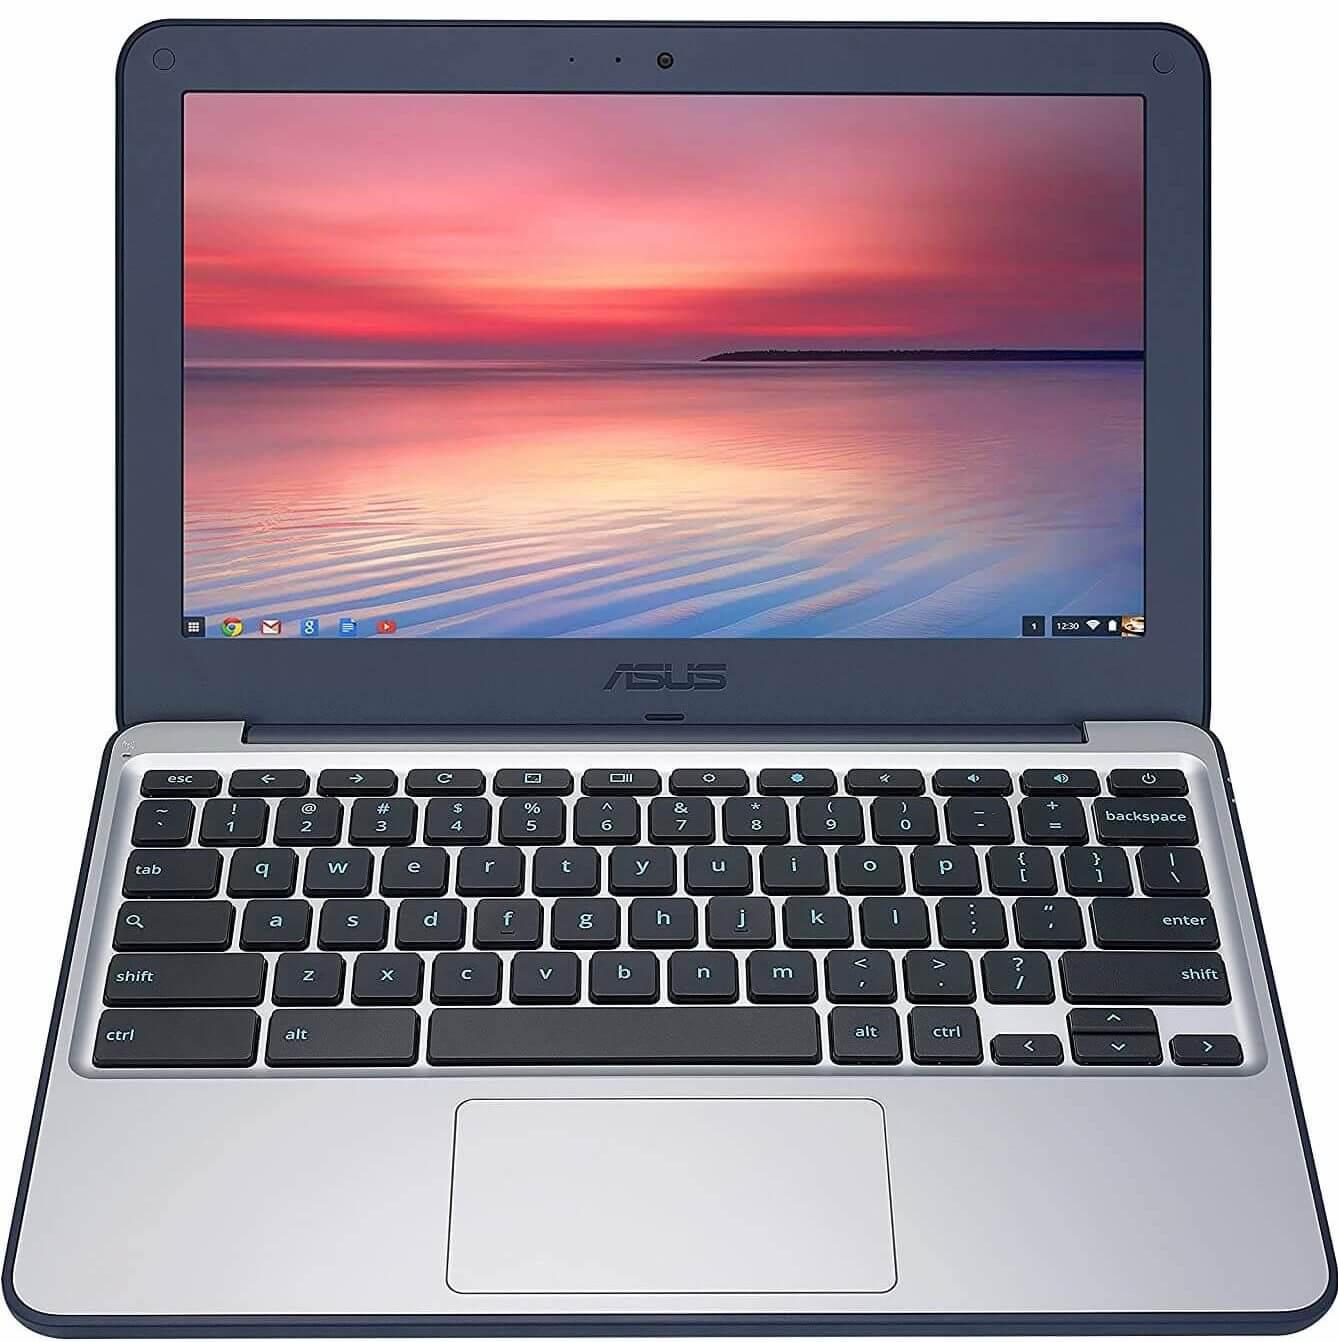 Best Deals on Chromebooks - ASUS Chromebook C202 Rugged Design